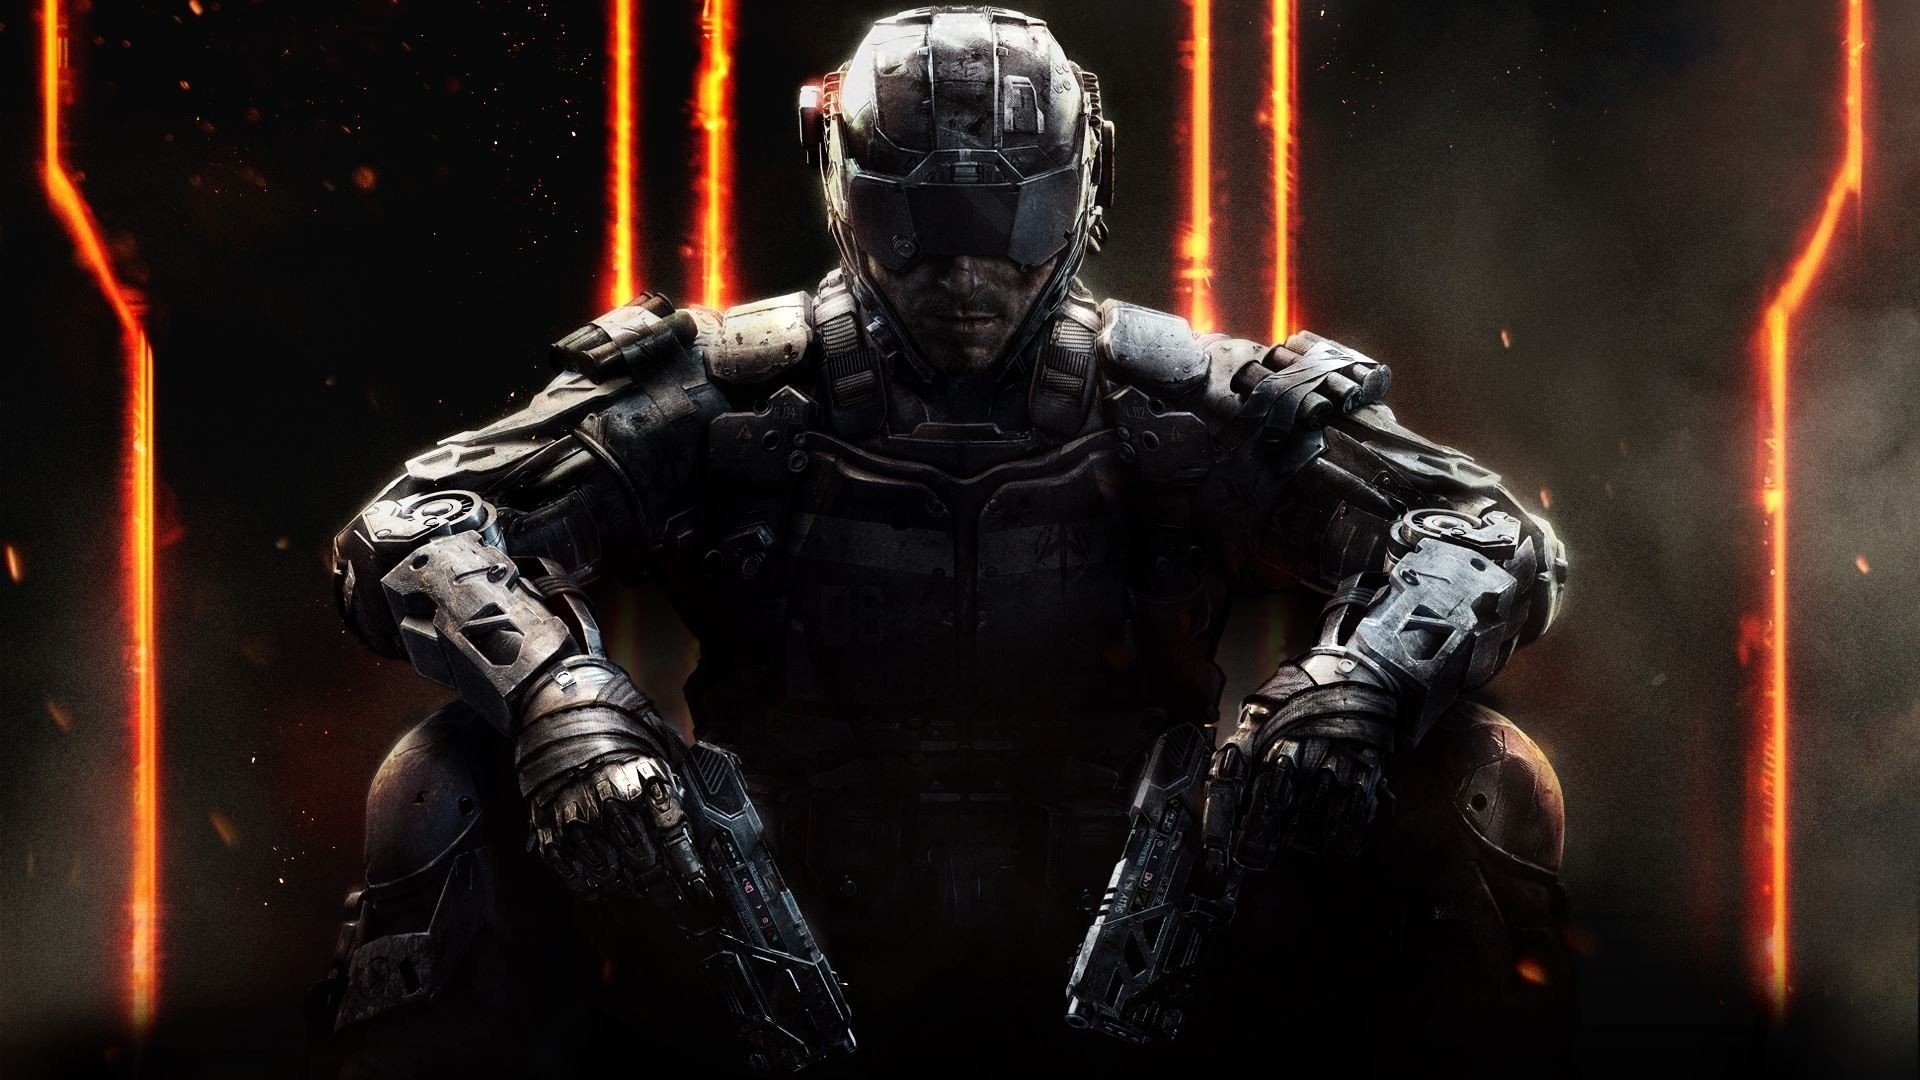 Call Of Duty Black Ops 3 Wallpapers Wallpapertag